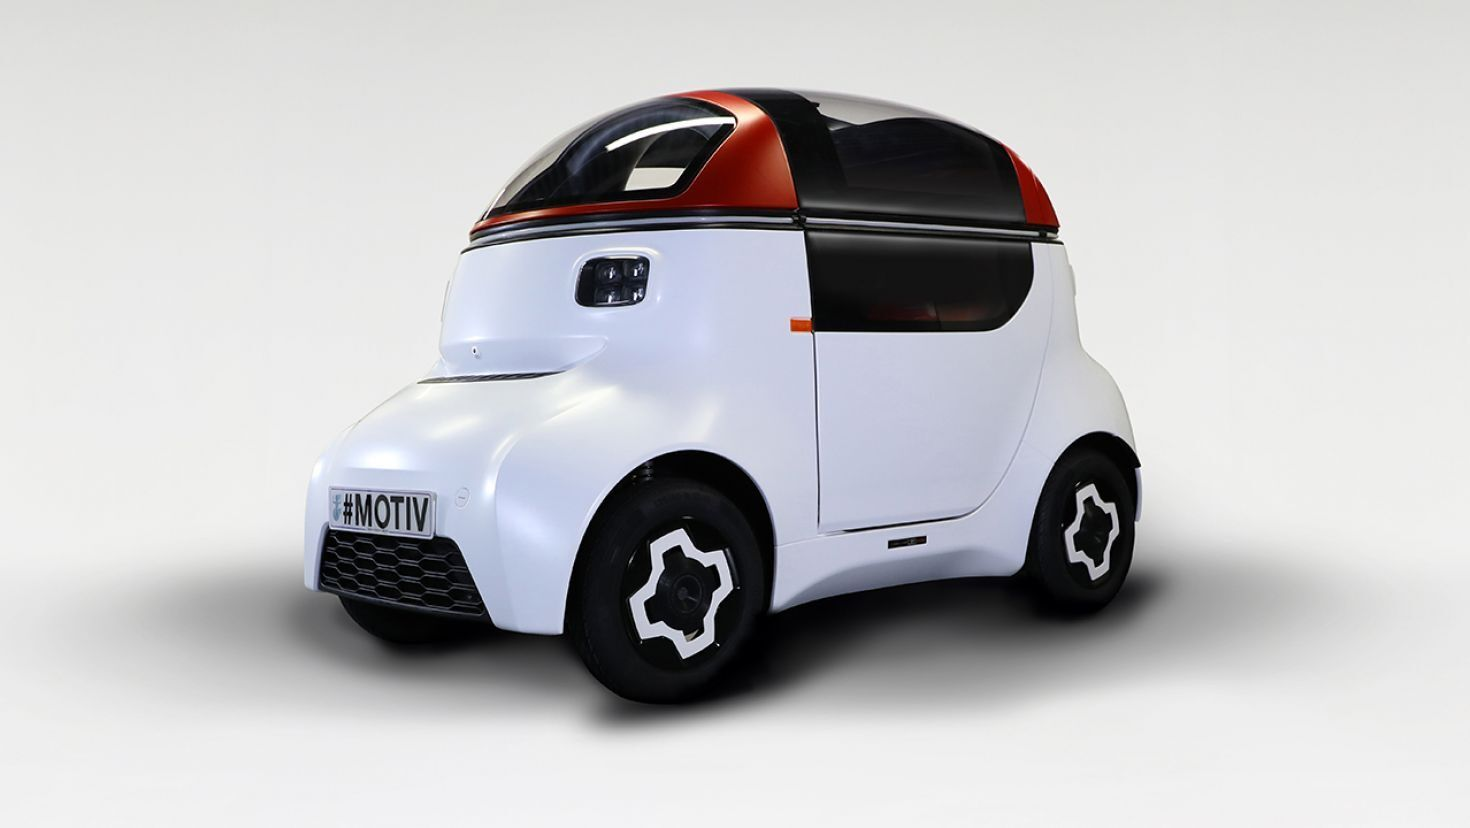 #CAsOnOffRoad | MOTIV single-seat autonomous 'car' is the ultimate in personal transporation